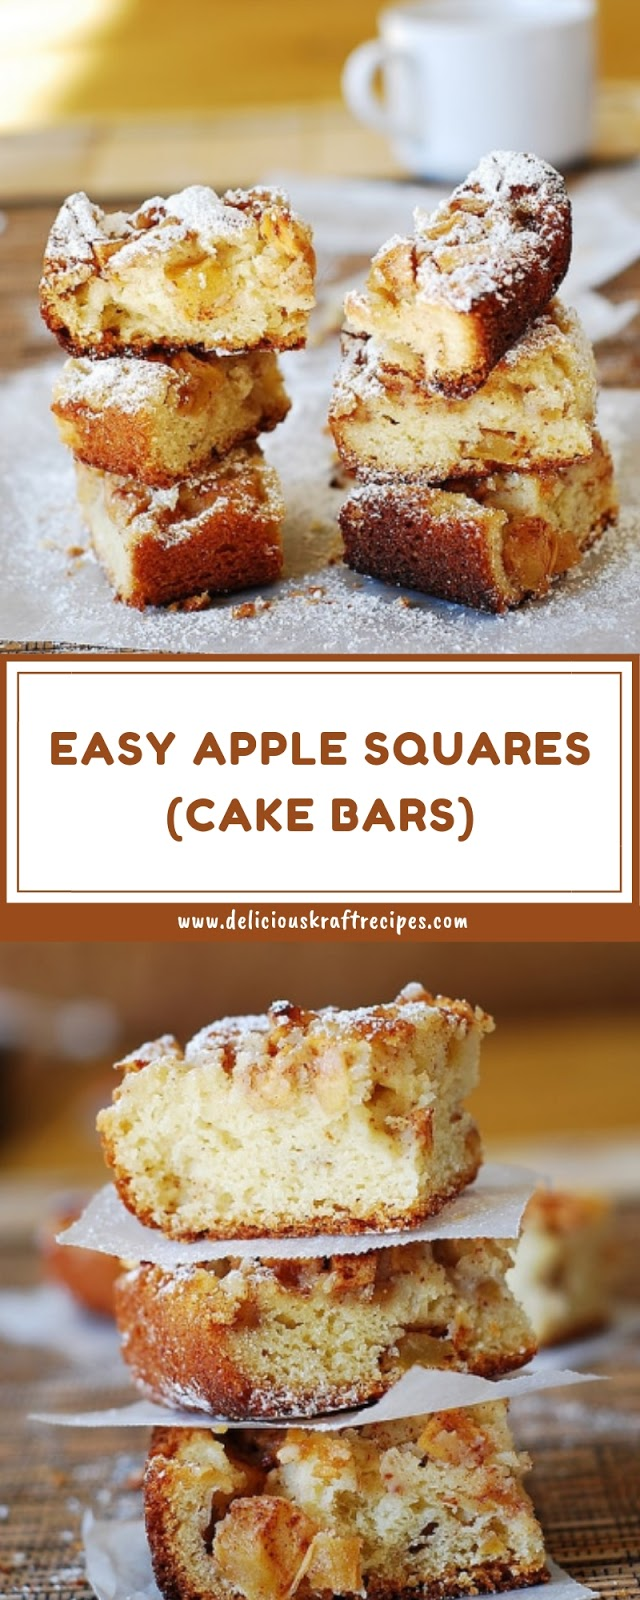 EASY APPLE SQUARES (CAKE BARS)